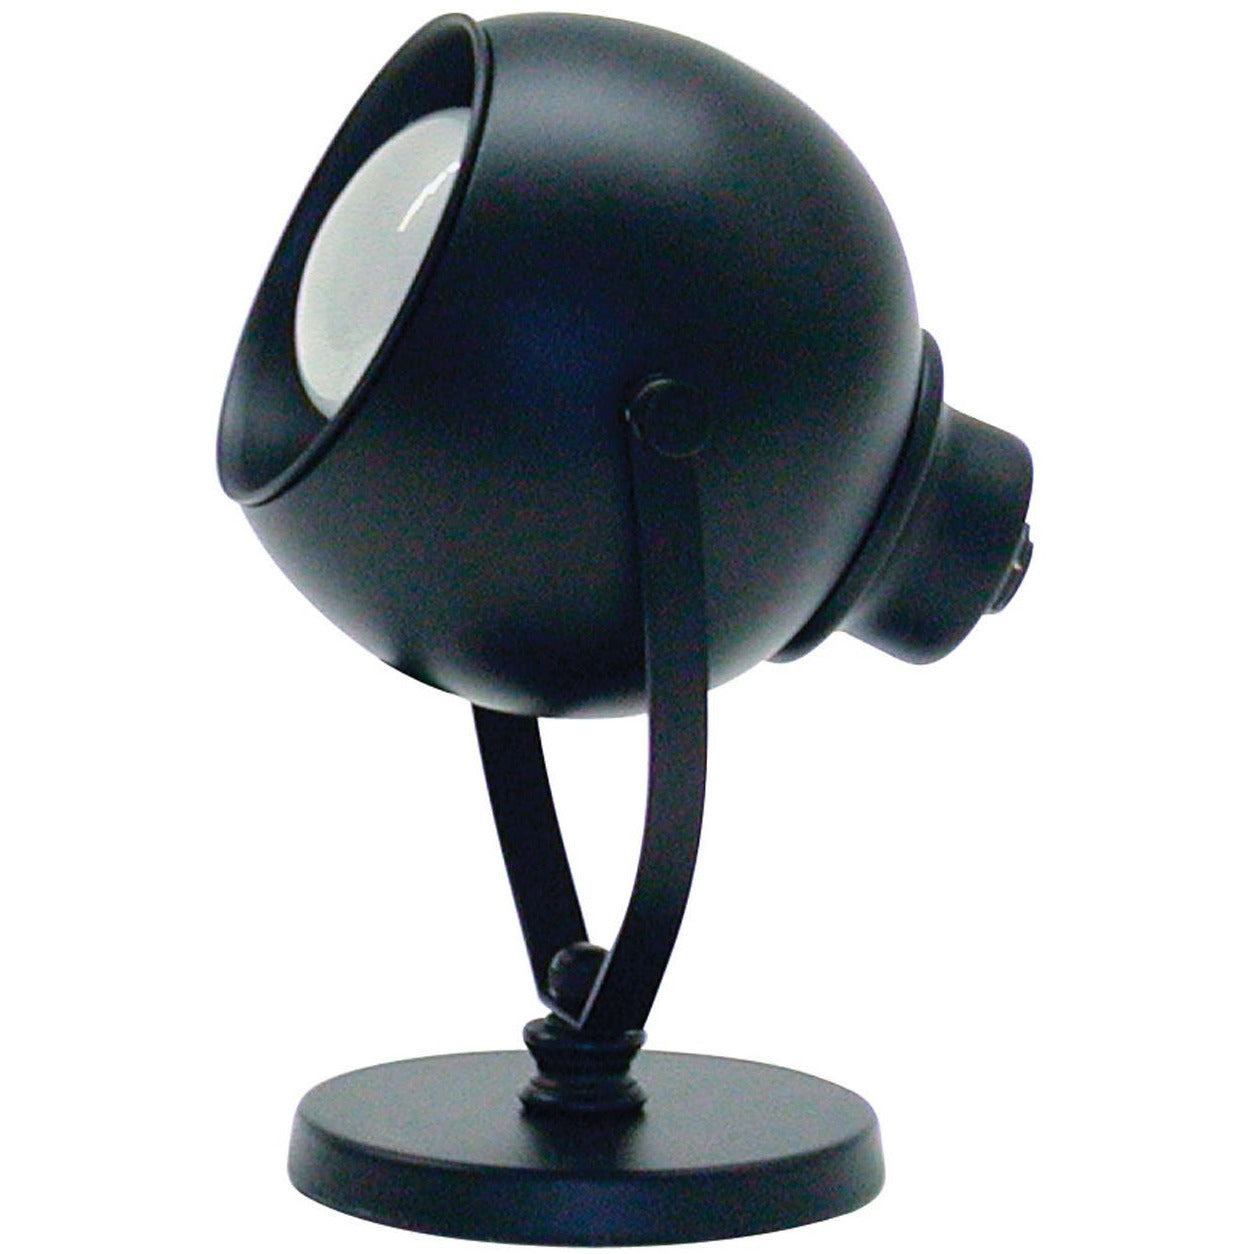 House of Troy - SP520-7 - One Light Spot Light - Spot Light - Black